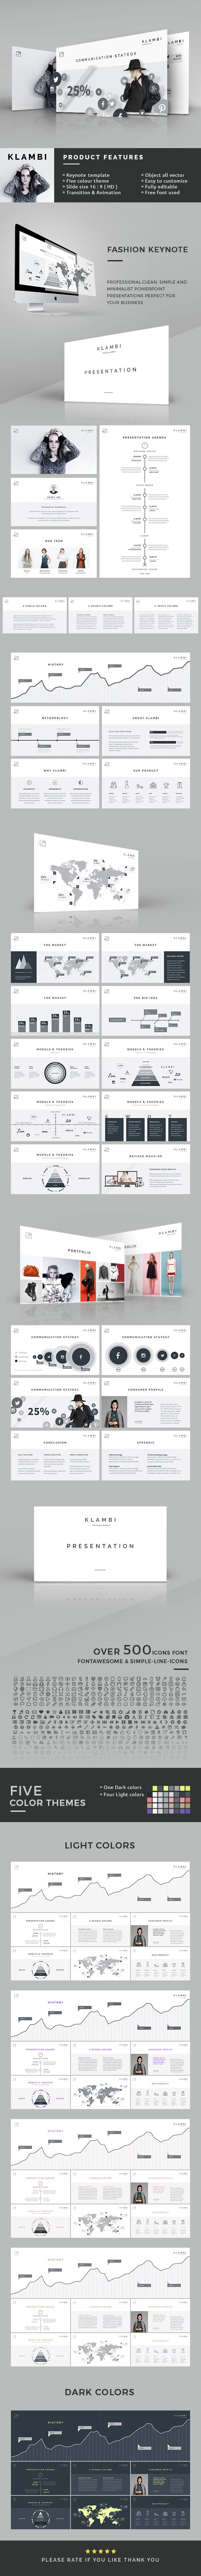 Fashion Keynote Template. Download here: http://graphicriver.net/item/fashion-keynote-template/14862465?ref=ksioks